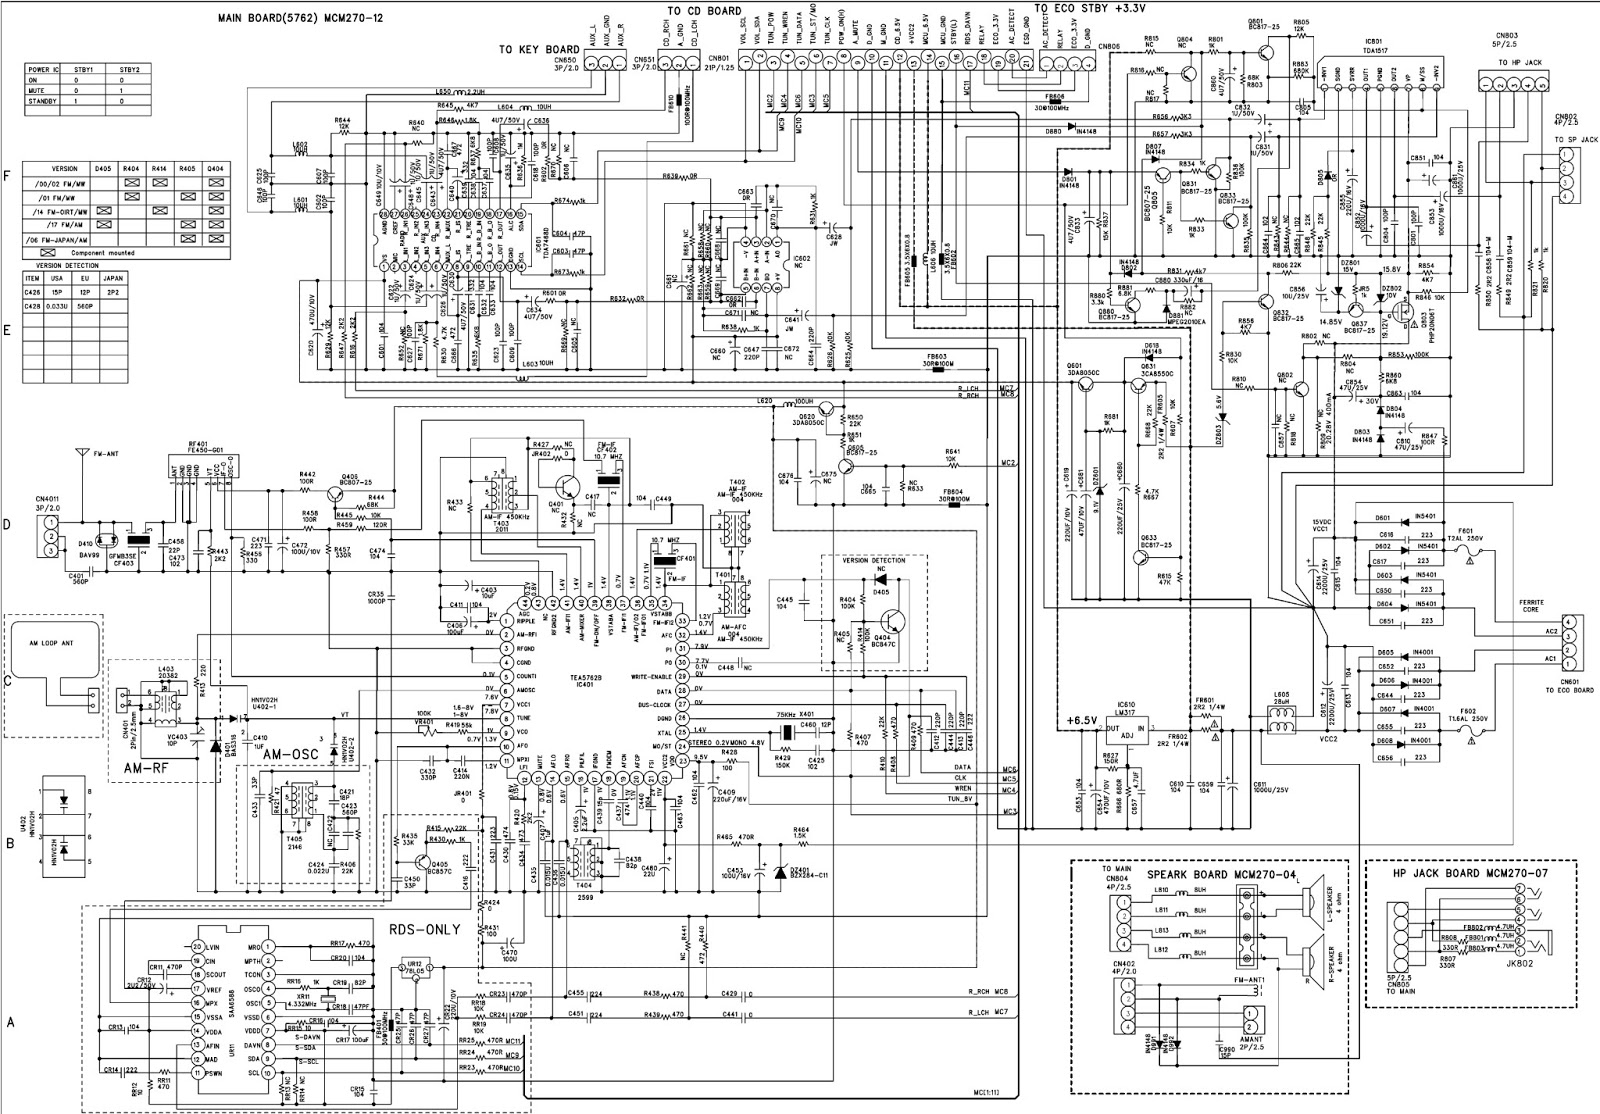 philips mcm277  05  12  98 - microsystem - main board - mcu board - schematic diagram